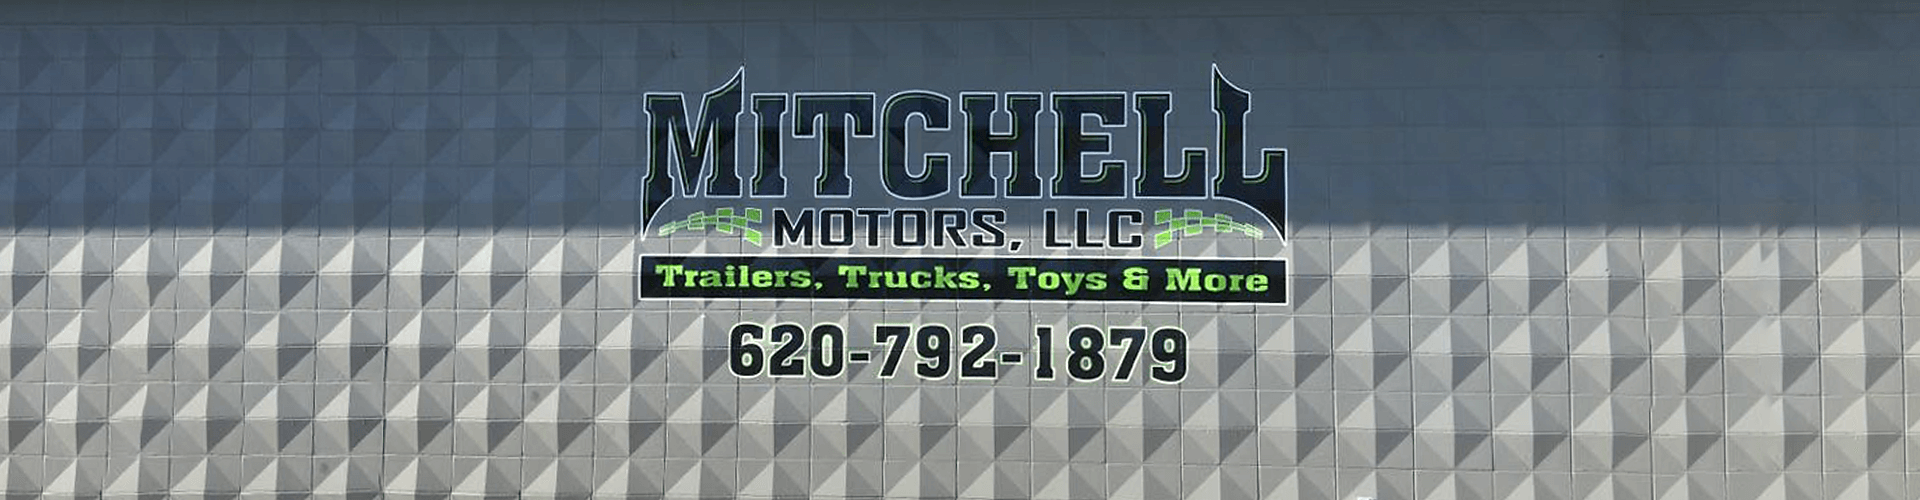 Mitchell Motors logo on patterned cement wall